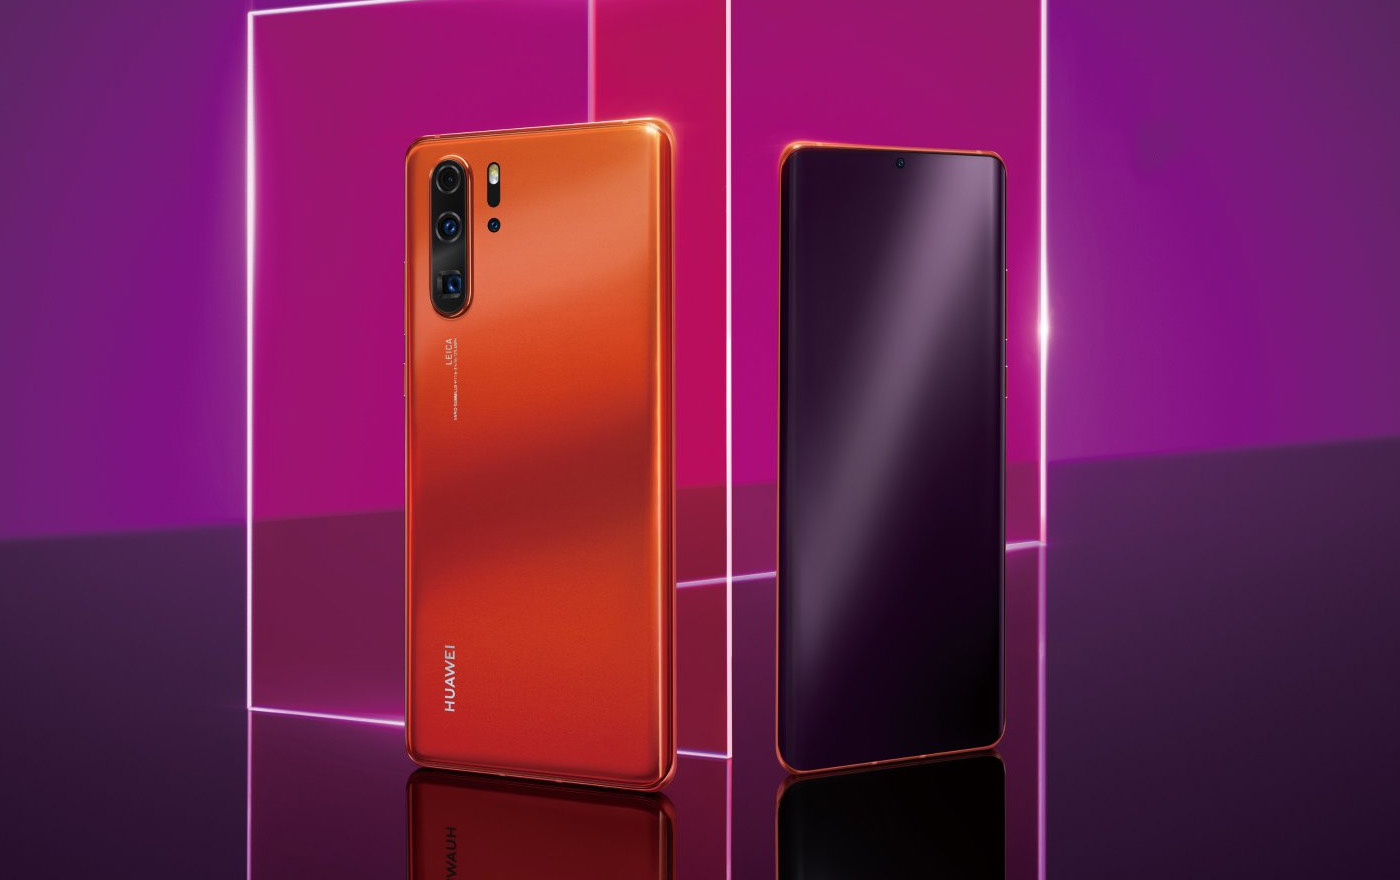 Huawei P30 Pro vs P20 Pro: are the upgrades worth the price?